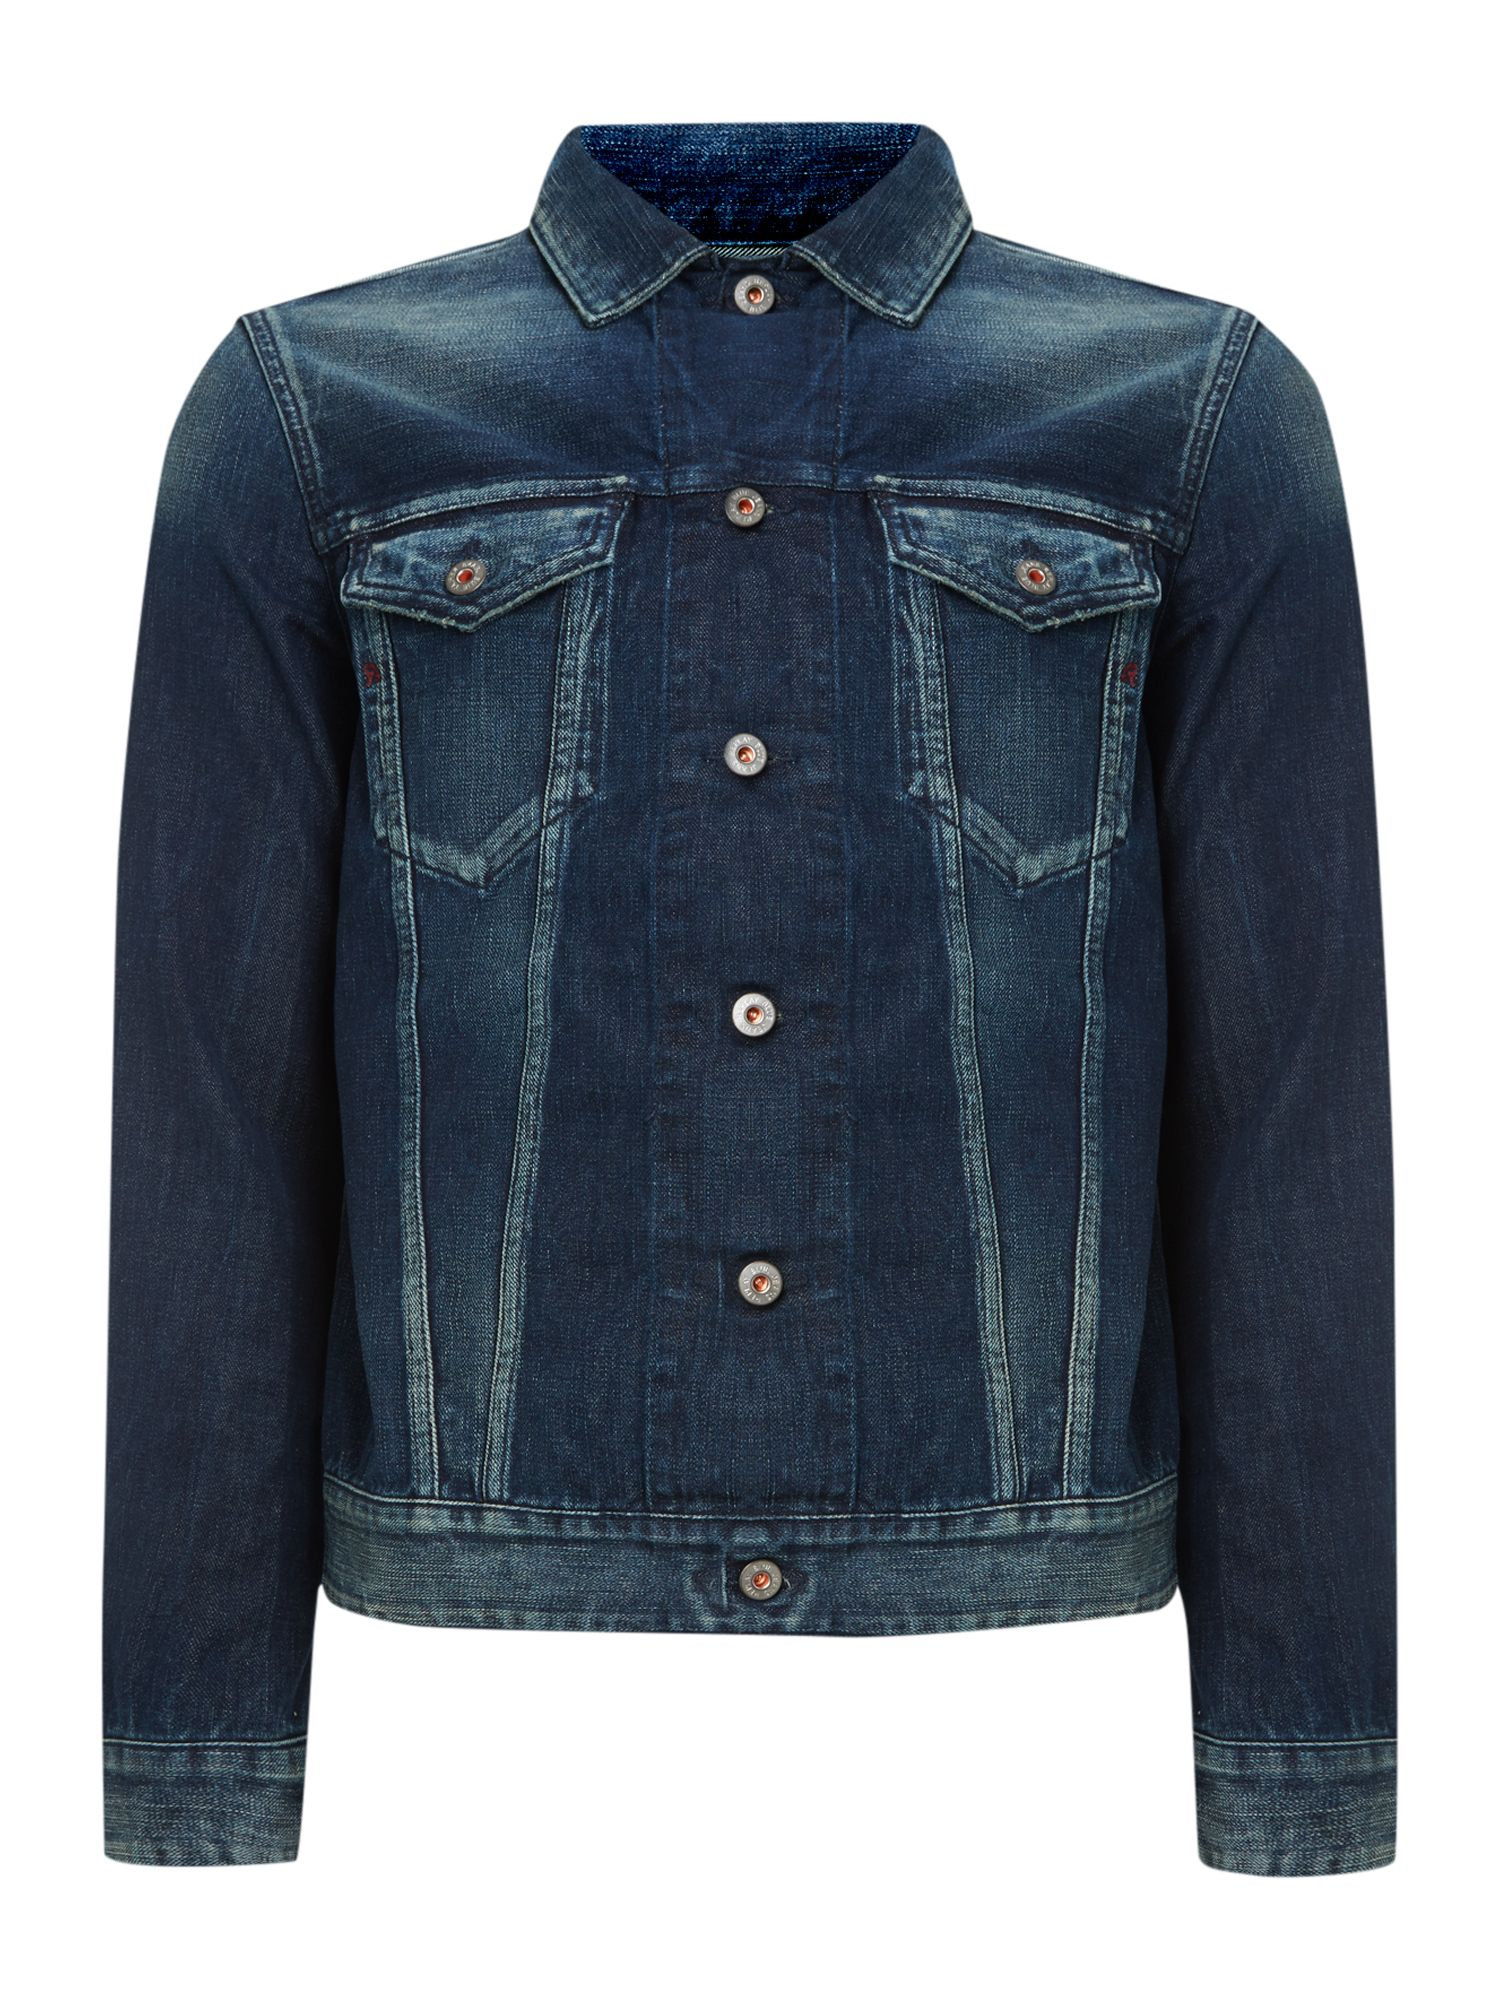 Classic and casual denim short jacket